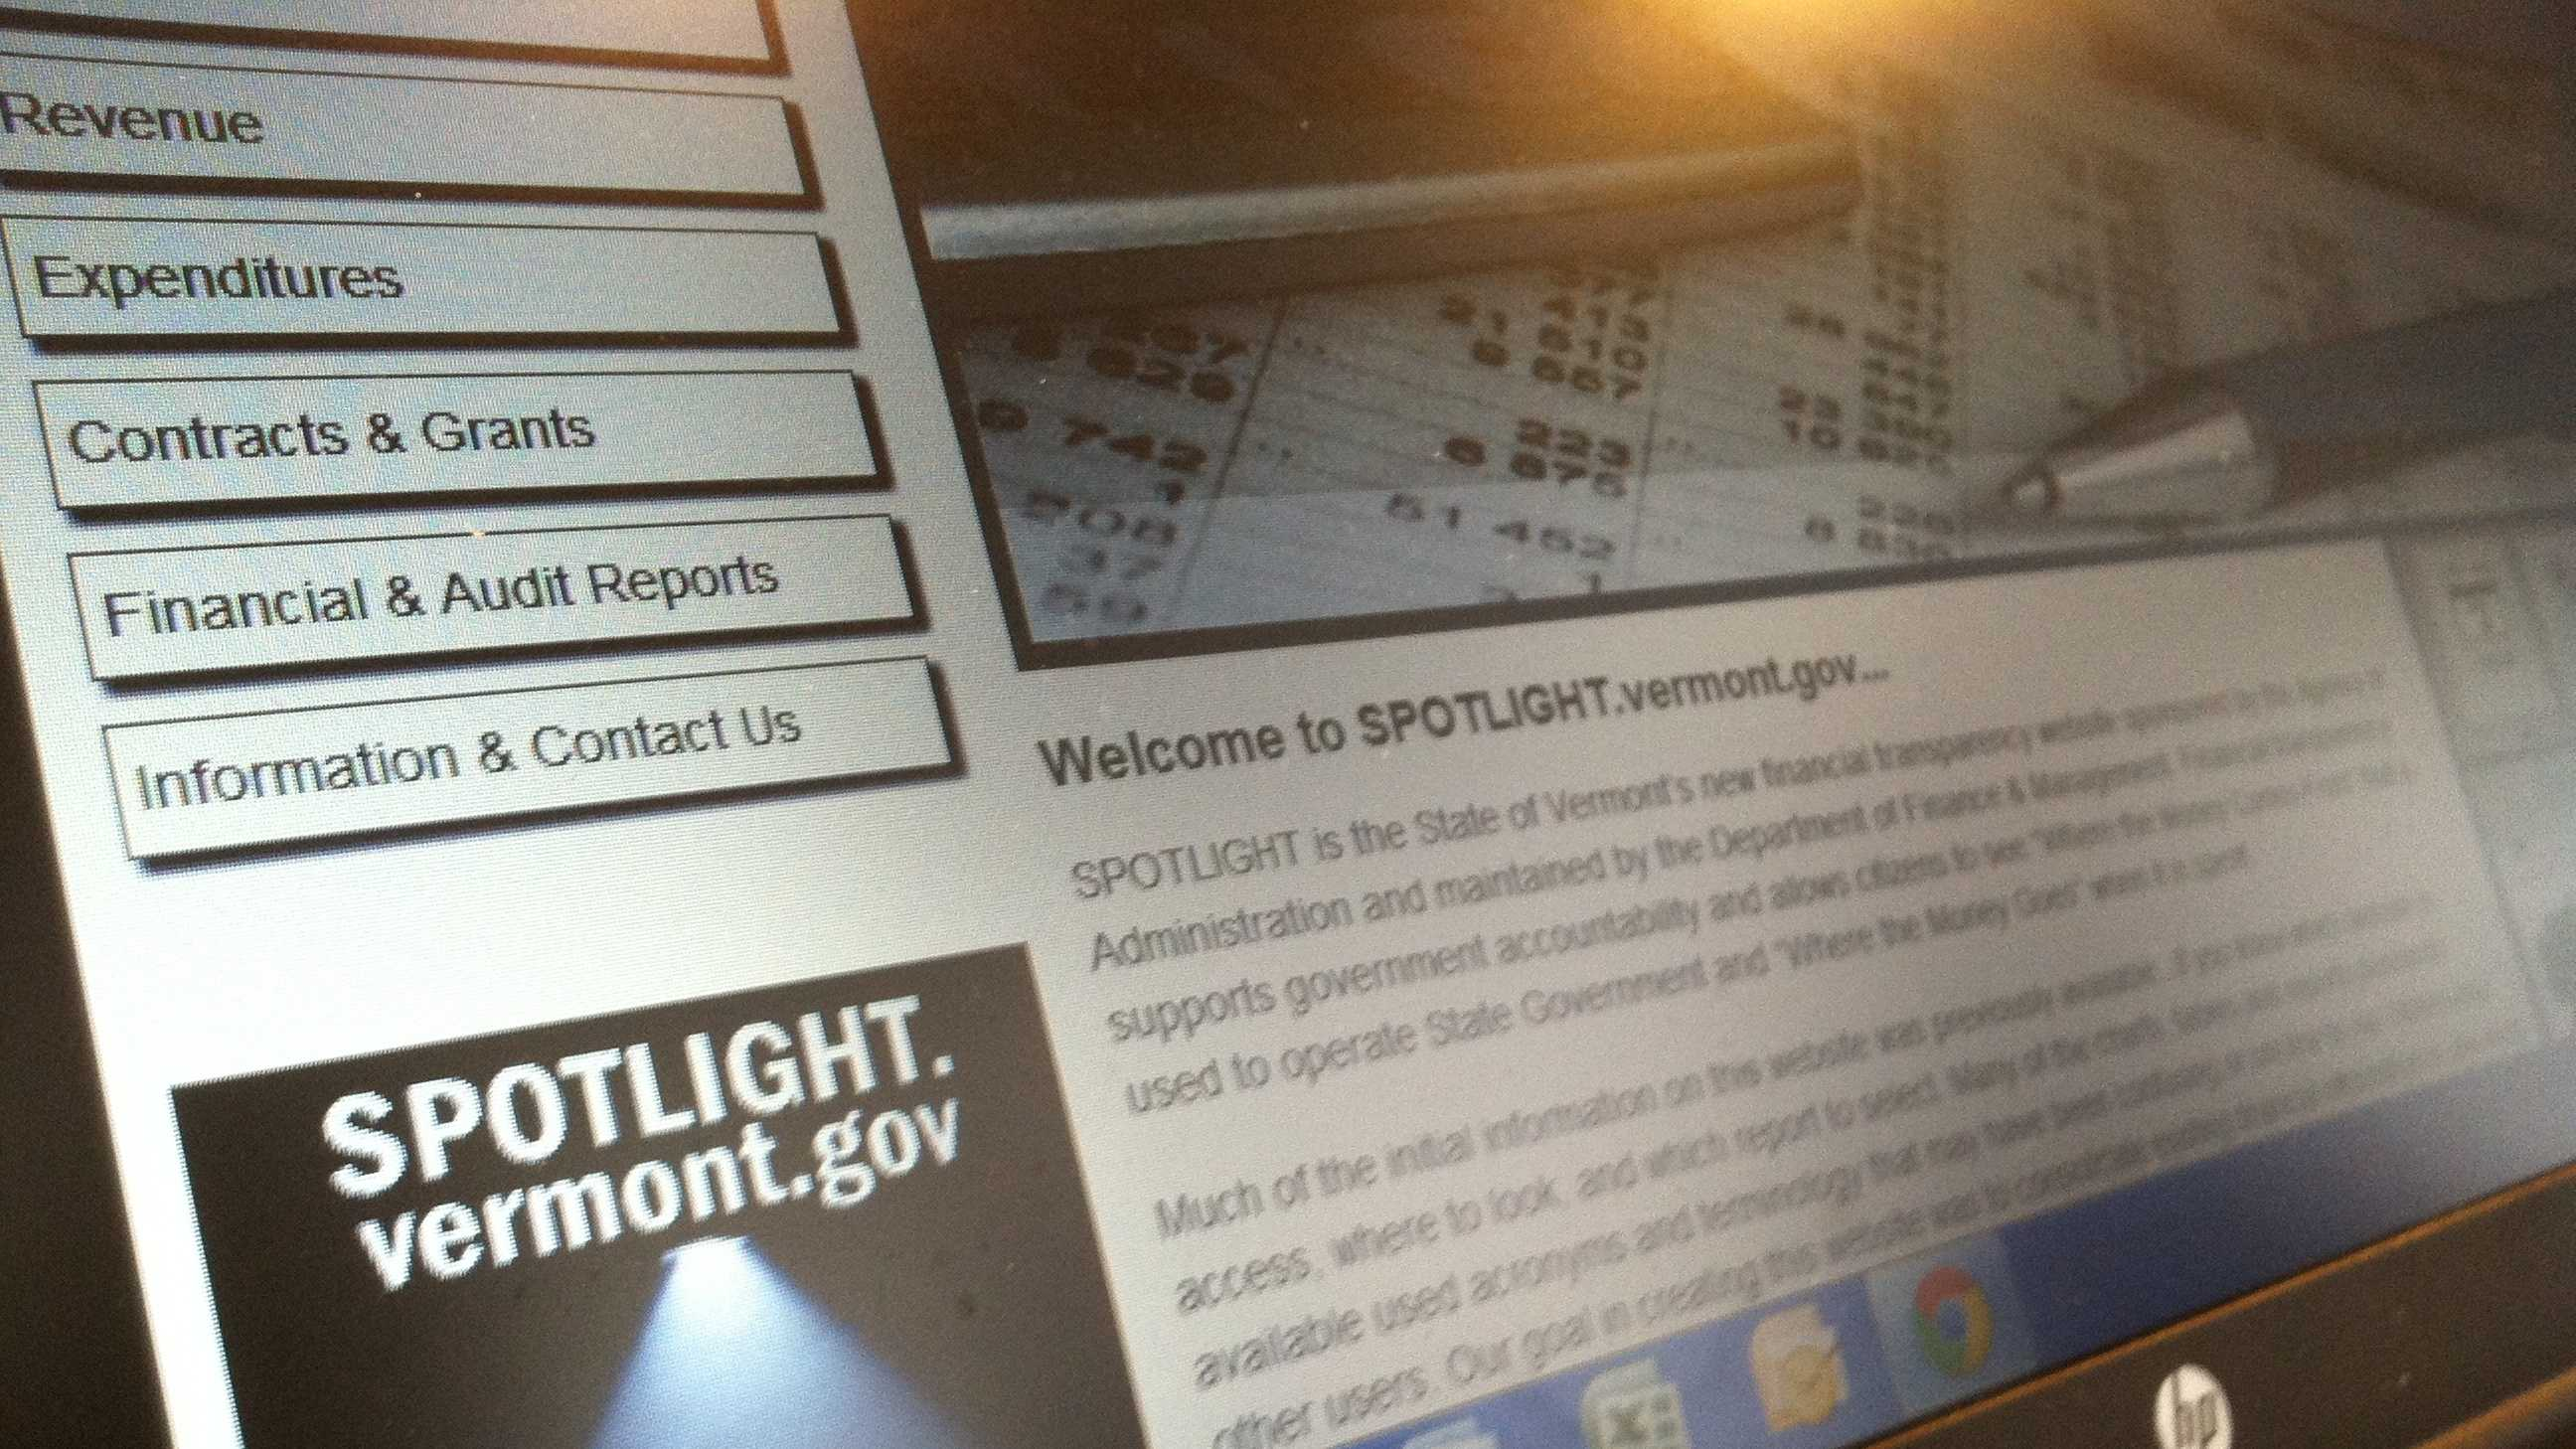 'Spotlight' and 'Governor's Dashboard' are new websites intended to speed access to information about Vermont and state government.